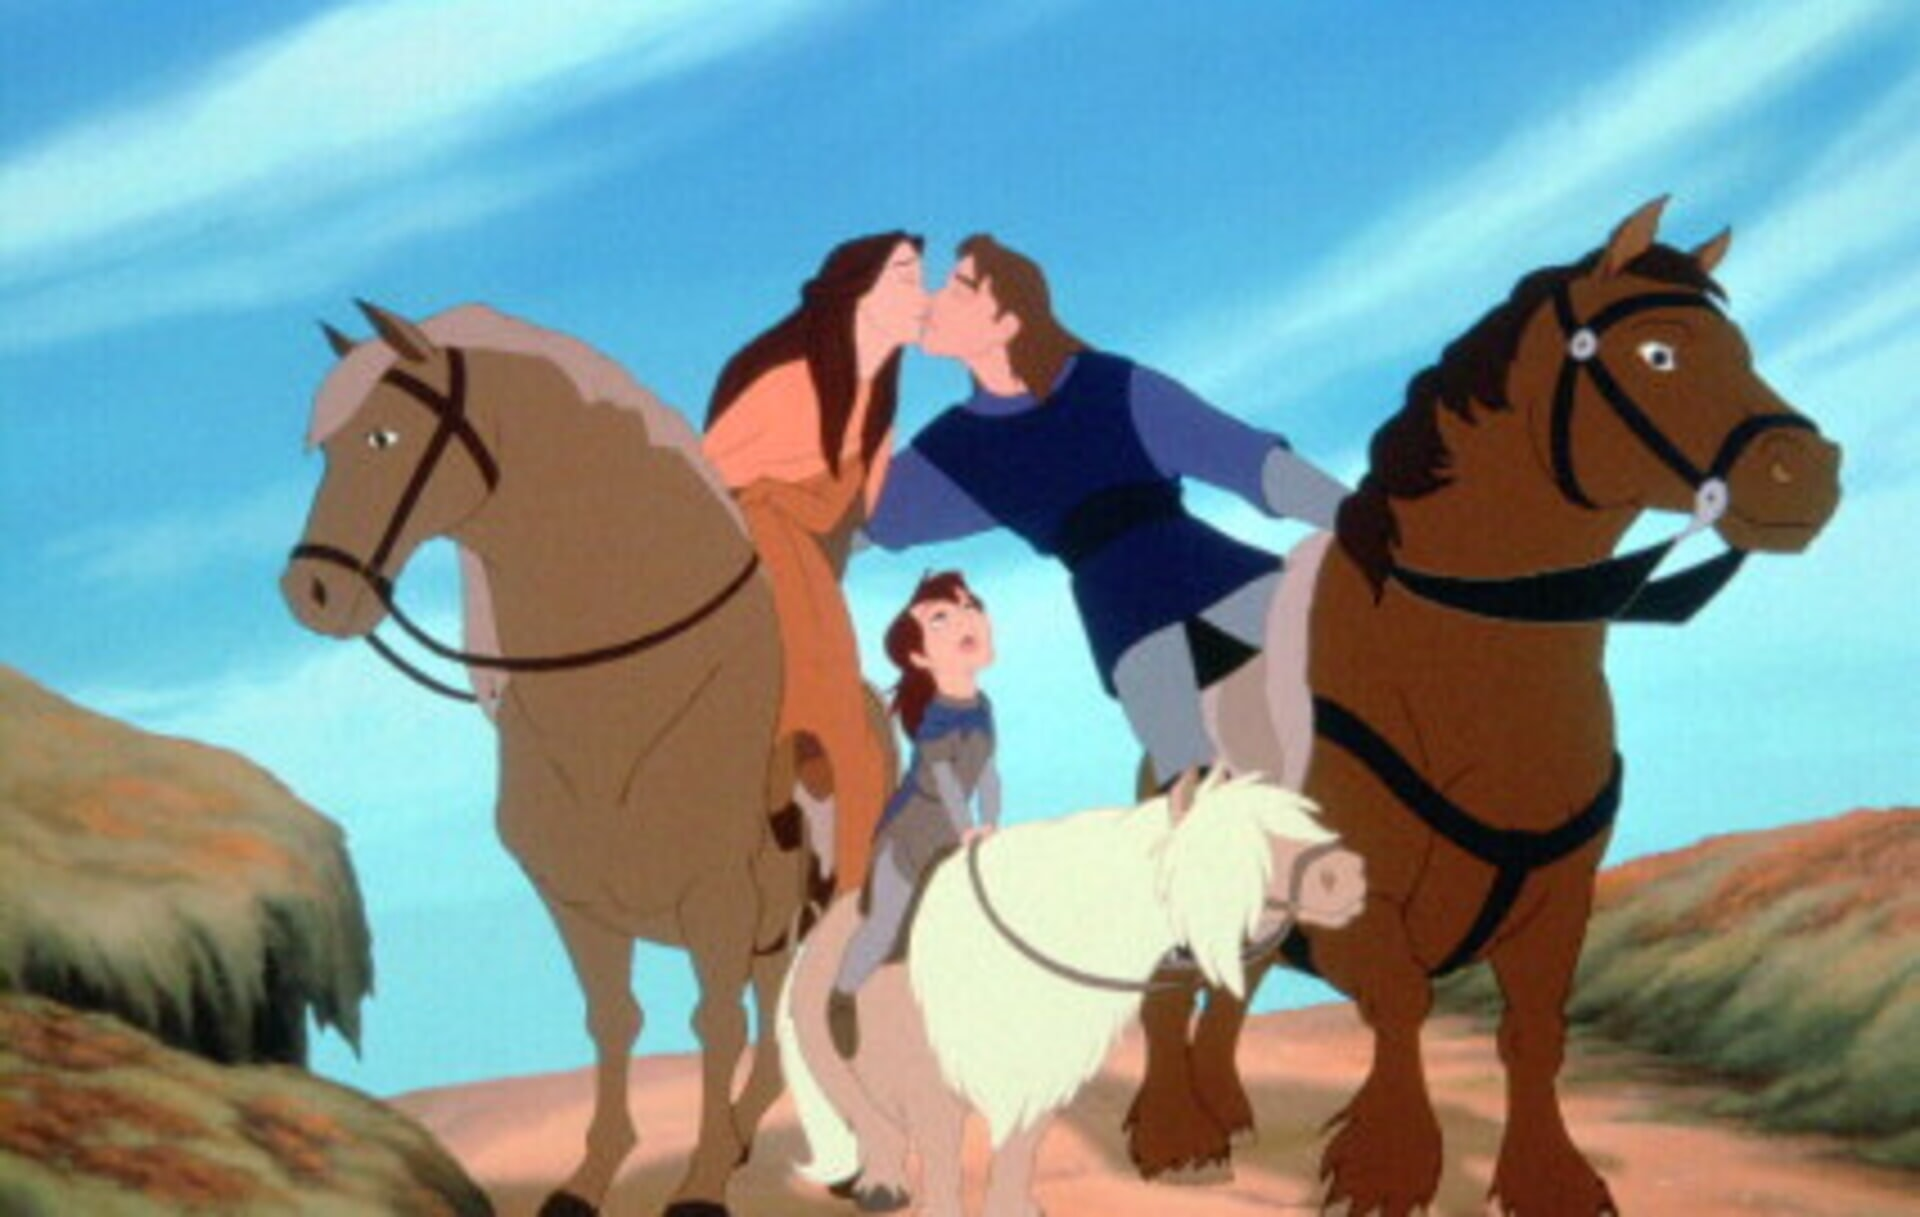 Quest for Camelot - Image 8